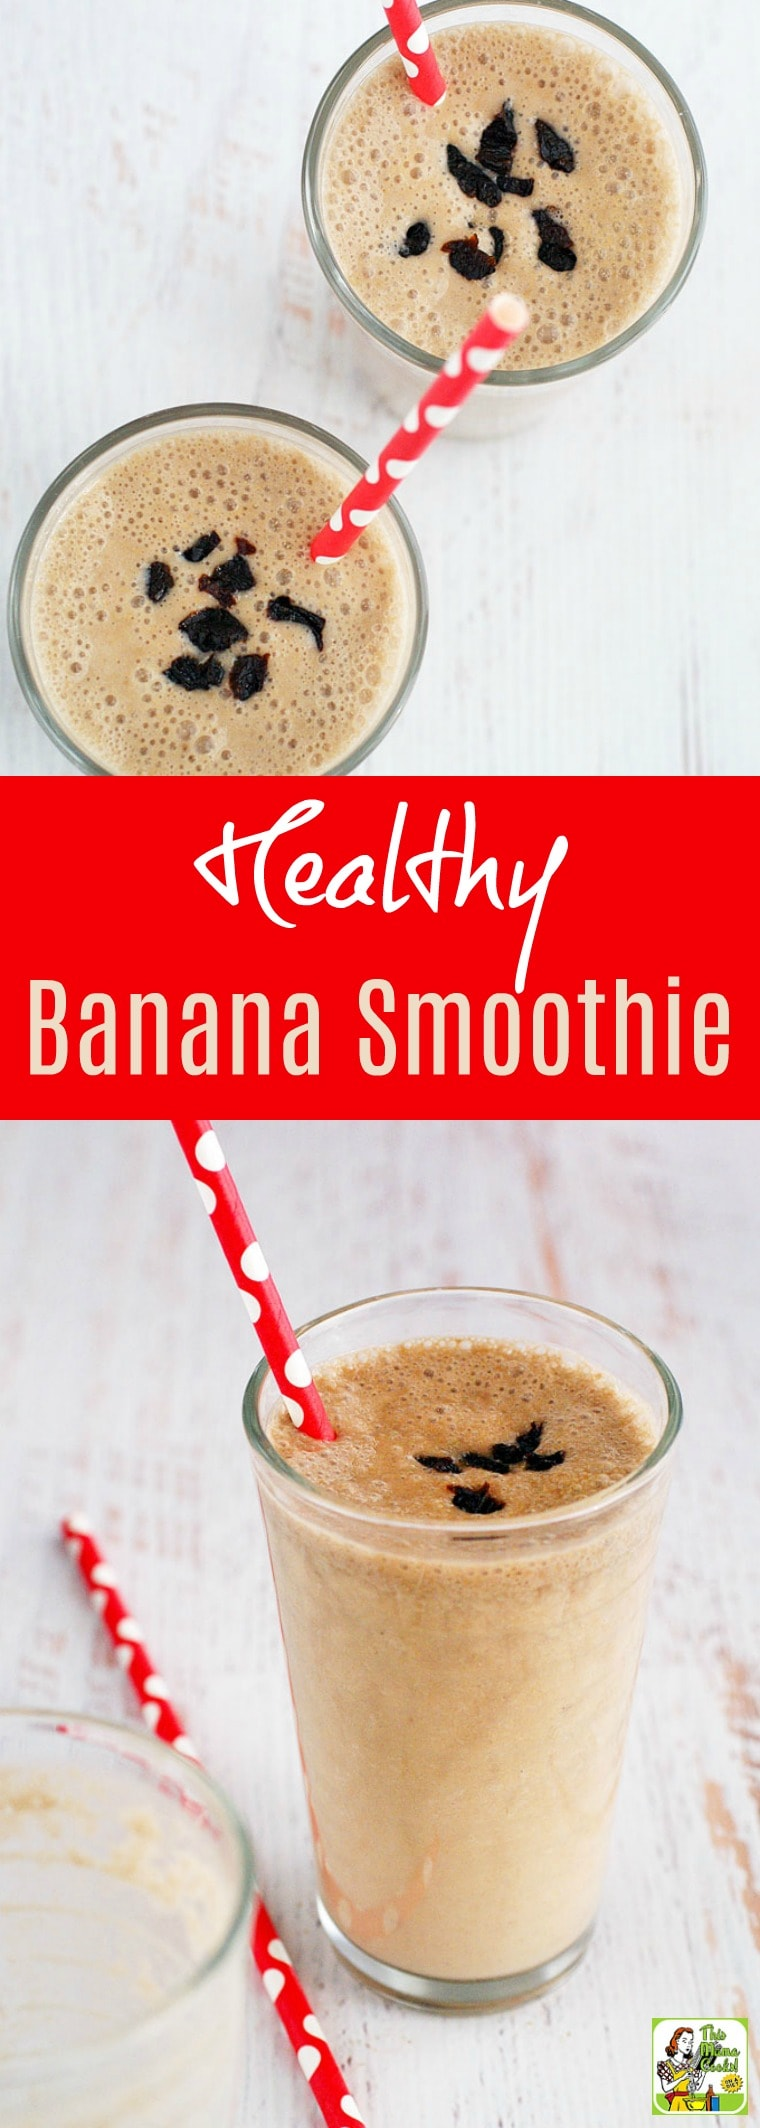 Jump start your day with a Healthy Banana Smoothie. This banana smoothie recipe makes a terrific on the go breakfast meal. It\'s dairy free, nut free, gluten free, and made with sunflower butter, coconut milk, and light plum juice. #banana #dairyfree #breakfast #snack #vegan #recipe #easy #recipeoftheday #healthyrecipes #glutenfree #easyrecipes #breakfast #snacks #lowcaloriesnacks #smoothies #smoothiesrecipes #healthydrinks #healthydrinksrecipe